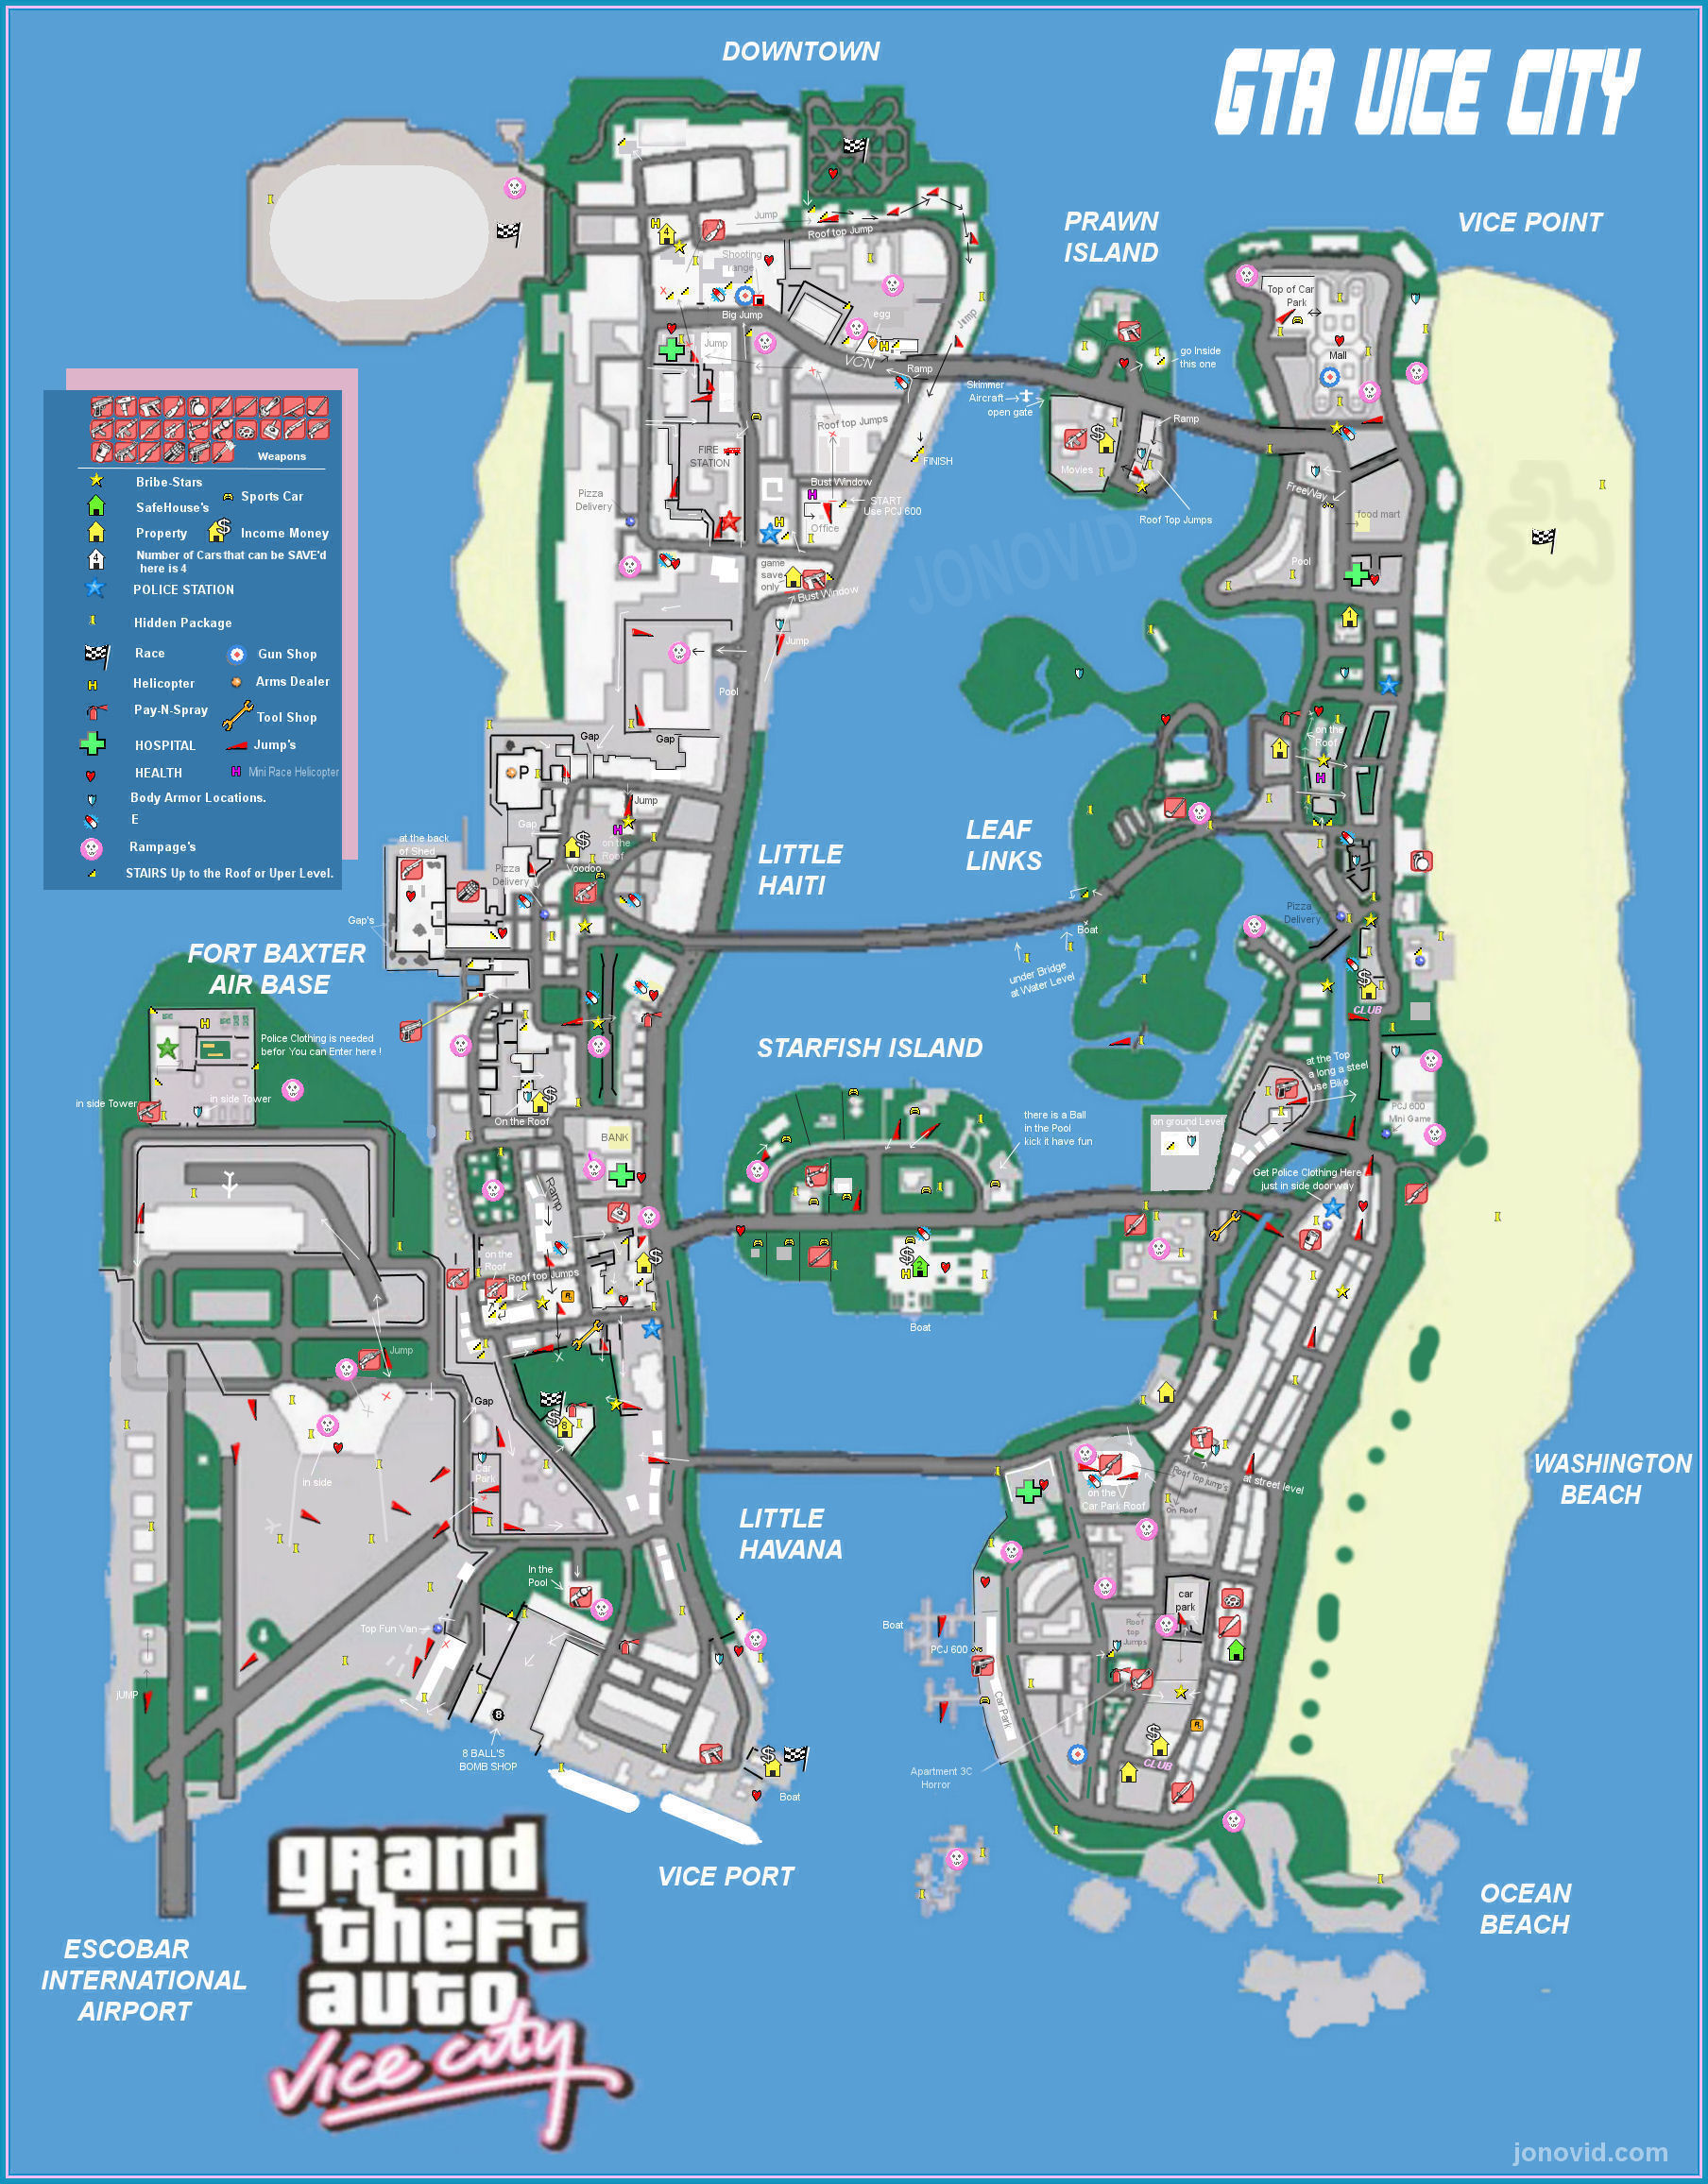 All sizes | GTA vice city Game Map | Flickr - Photo Sharing!